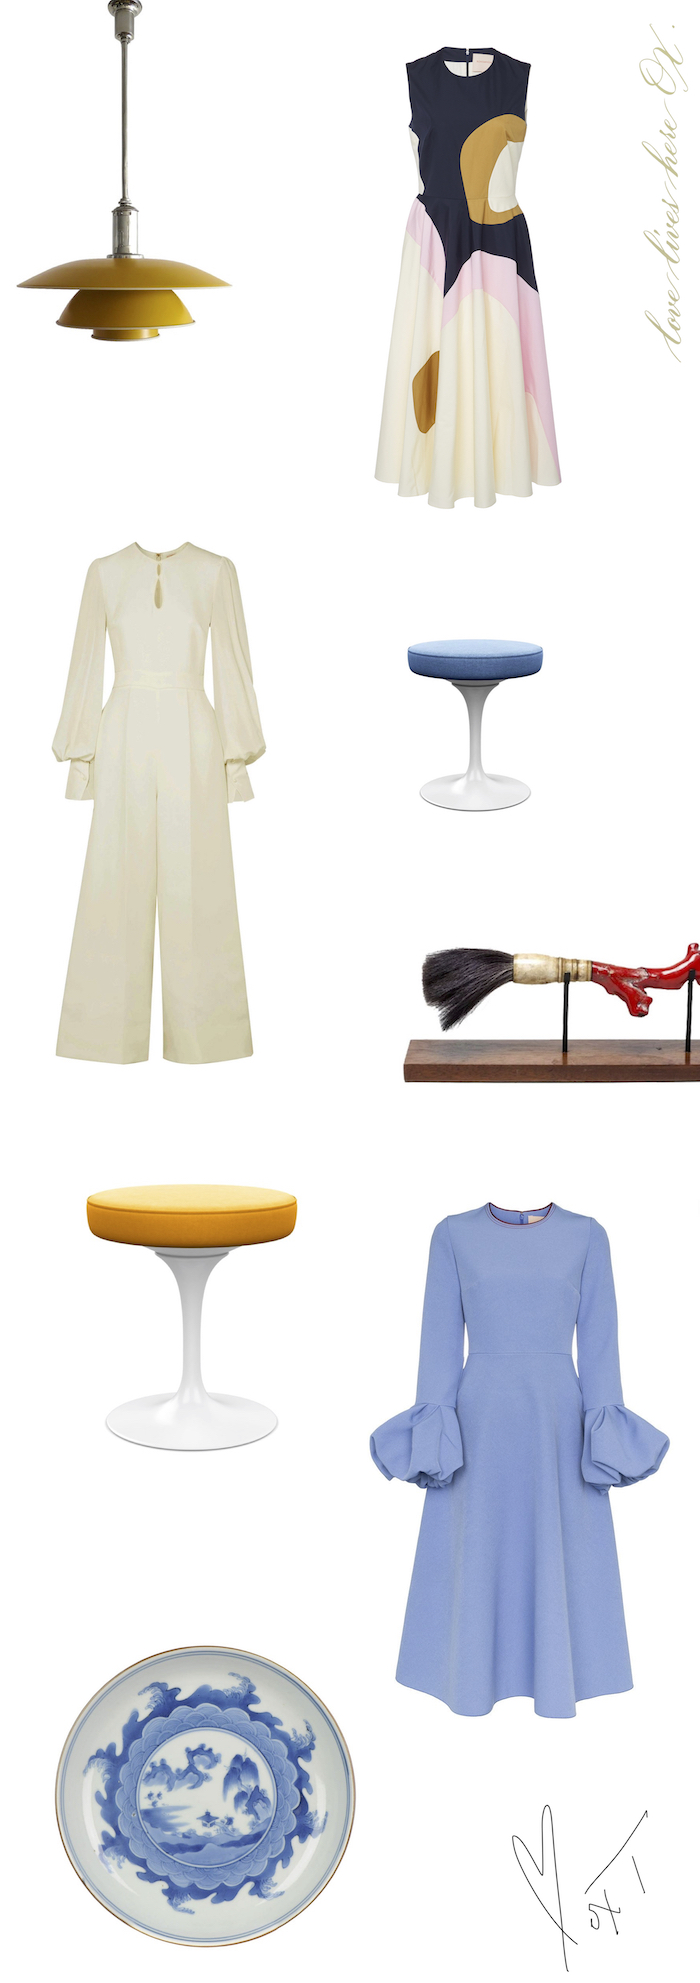 Beauty - Timeless BeautyDesigns from the 17th century to the 21st.Roksanda - Cotton Poplin Dress + Aylin Bell Sleeve Dress + Aunya Jumpsuit - I'm admiring the elegant lines in all of these designs; a modern twist on some very elegant timeless silhouettes.Knoll - The Tulip Stool - in Crossroad Zest + Crossroad Cabana. Eero Saarinen Movement c1957.Plop yourself right here. Hi.Sweetheart, do you like that?I love it.Me too...We sat, held hands and breathed together.There are some people who feel like home, just breathing next to me.This is because of our own ability to be aware of dedication to pinpointing such deliberate loving powers in our sweet summoning.One of a Kind - Asian Calligraphy brush, made with red sea coral handle. 19th century.Four Treasures of the Study (文房四宝 wén fáng sì bǎo) is an expression used to refer to the ink brush, inkstick, paper and inkstone used in Chinese calligraphy and painting. The name stems from the time of the Southern and Northern Dynasties (420-589 AD).Dear Darling Sweetie. Have a beautiful day.One of a Kind - Antique Japanese Ko-Imari Kakiemon Plate from the Edo Period (circa 1680-1720). I know. This is lovely.One of a Kind - Poul Henningsen. PH-4 Pendant Light, c1930. My love for lighting fixtures continues. The honey color shade and well proportioned design is pleasing. This would make lovely overhead lighting in my broom closet. :)